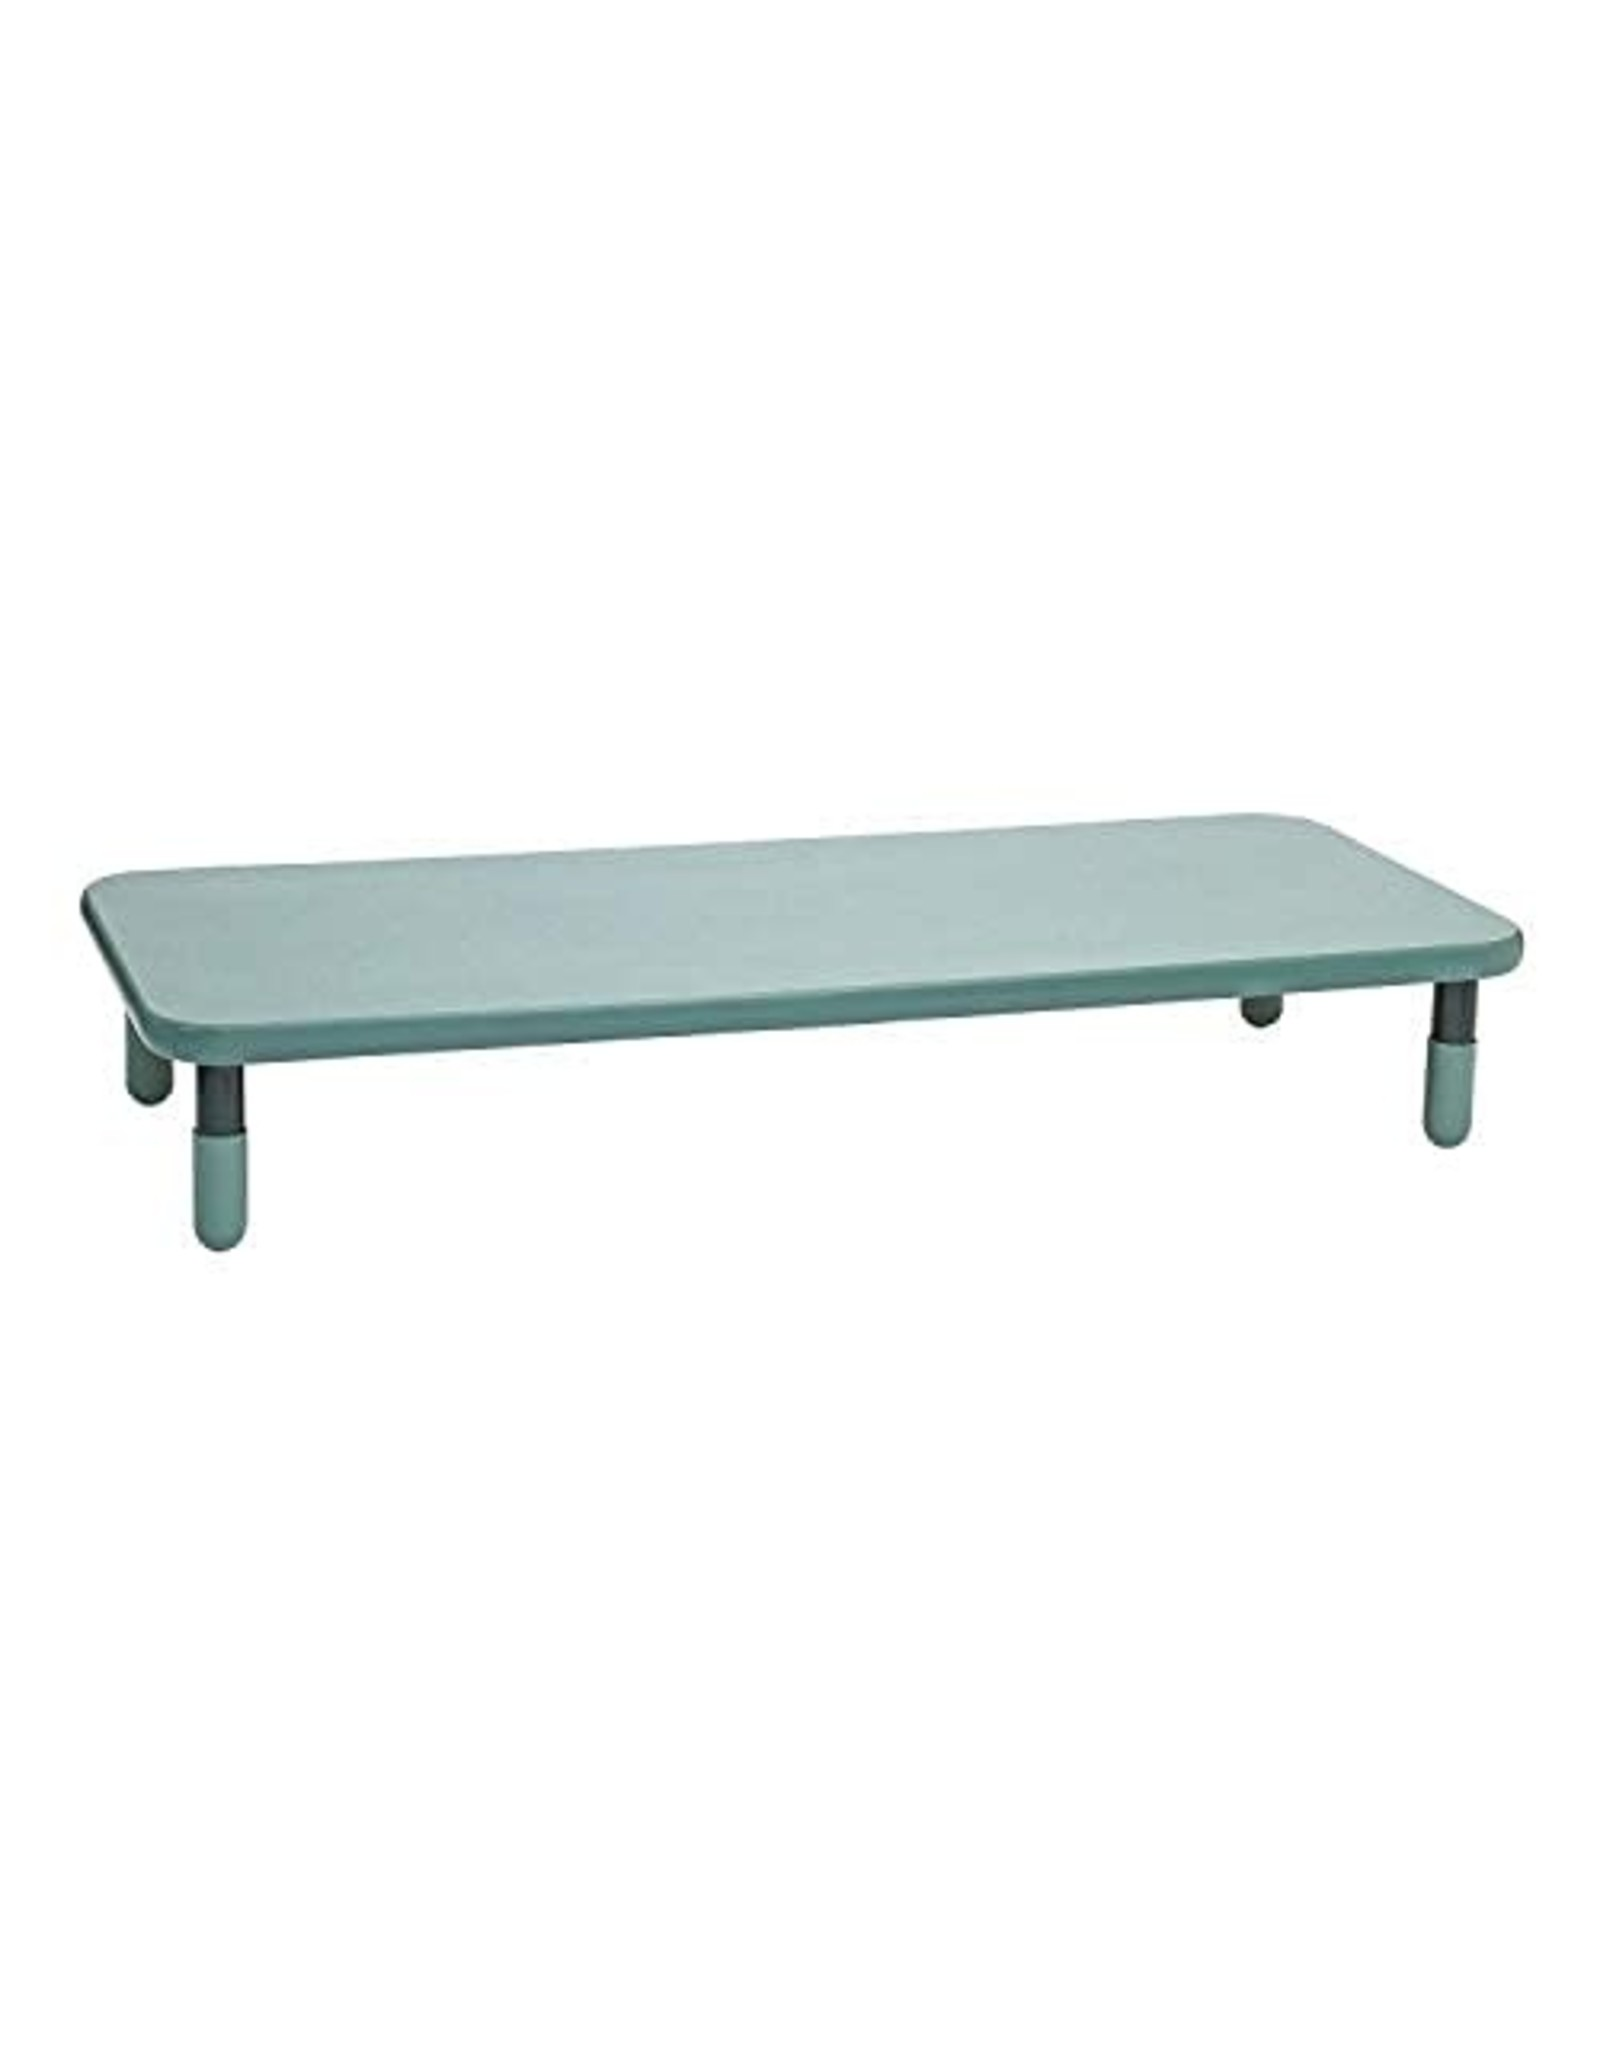 """Children's Factory Angeles Baseline 72""""x30"""" Rect. Table, Homeschool/Playroom Toddler Furniture, Kids Activity Table for Daycare/Classroom Learning, 12"""" Legs, Teal Grn."""